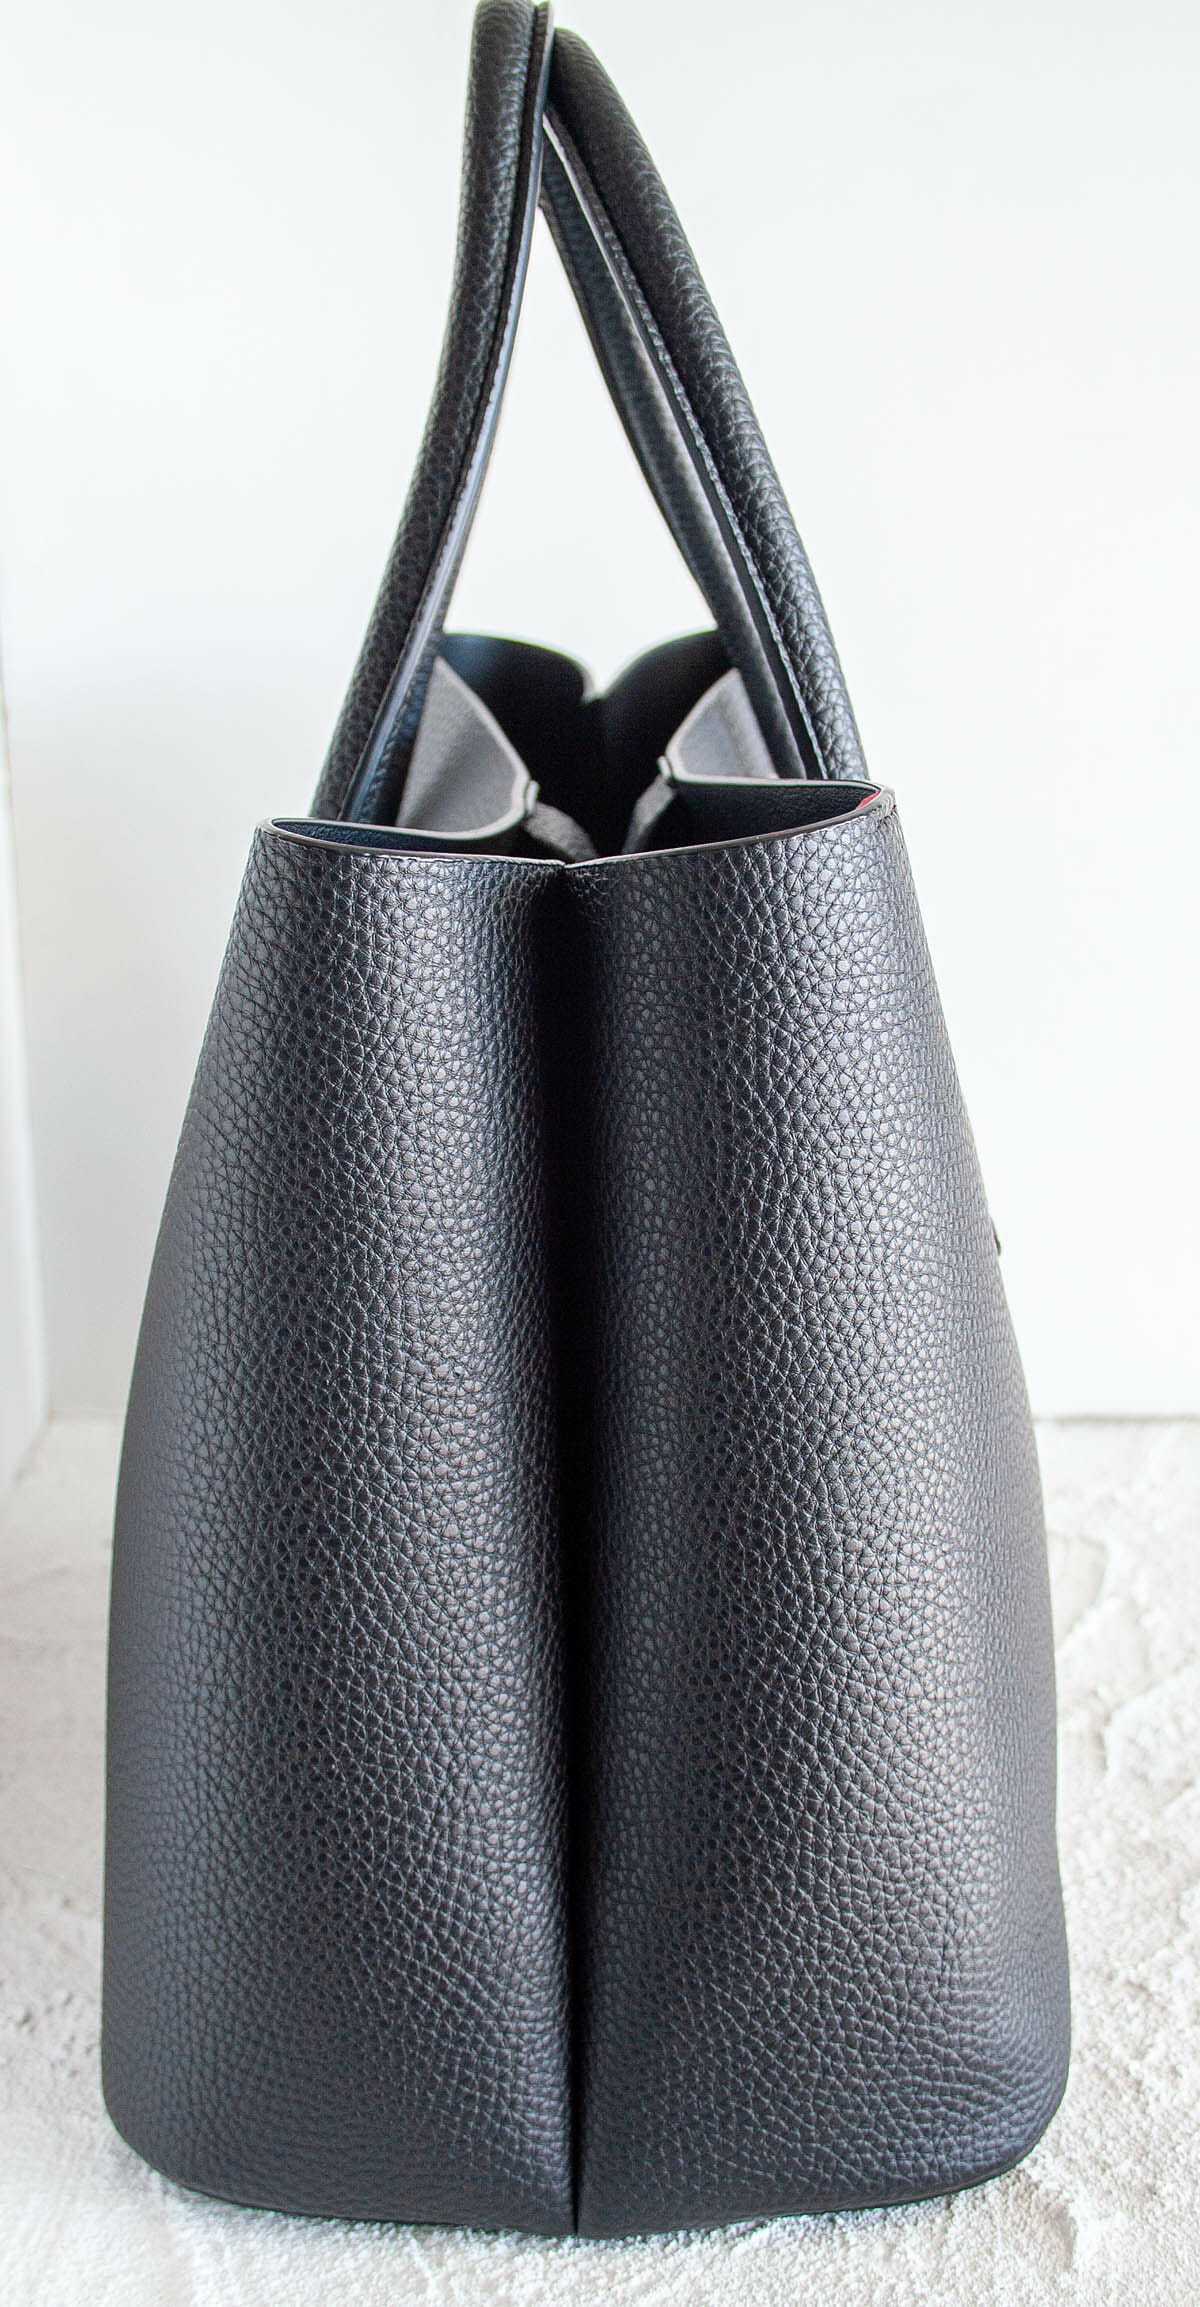 Angela Roi Cher Tote sideview.